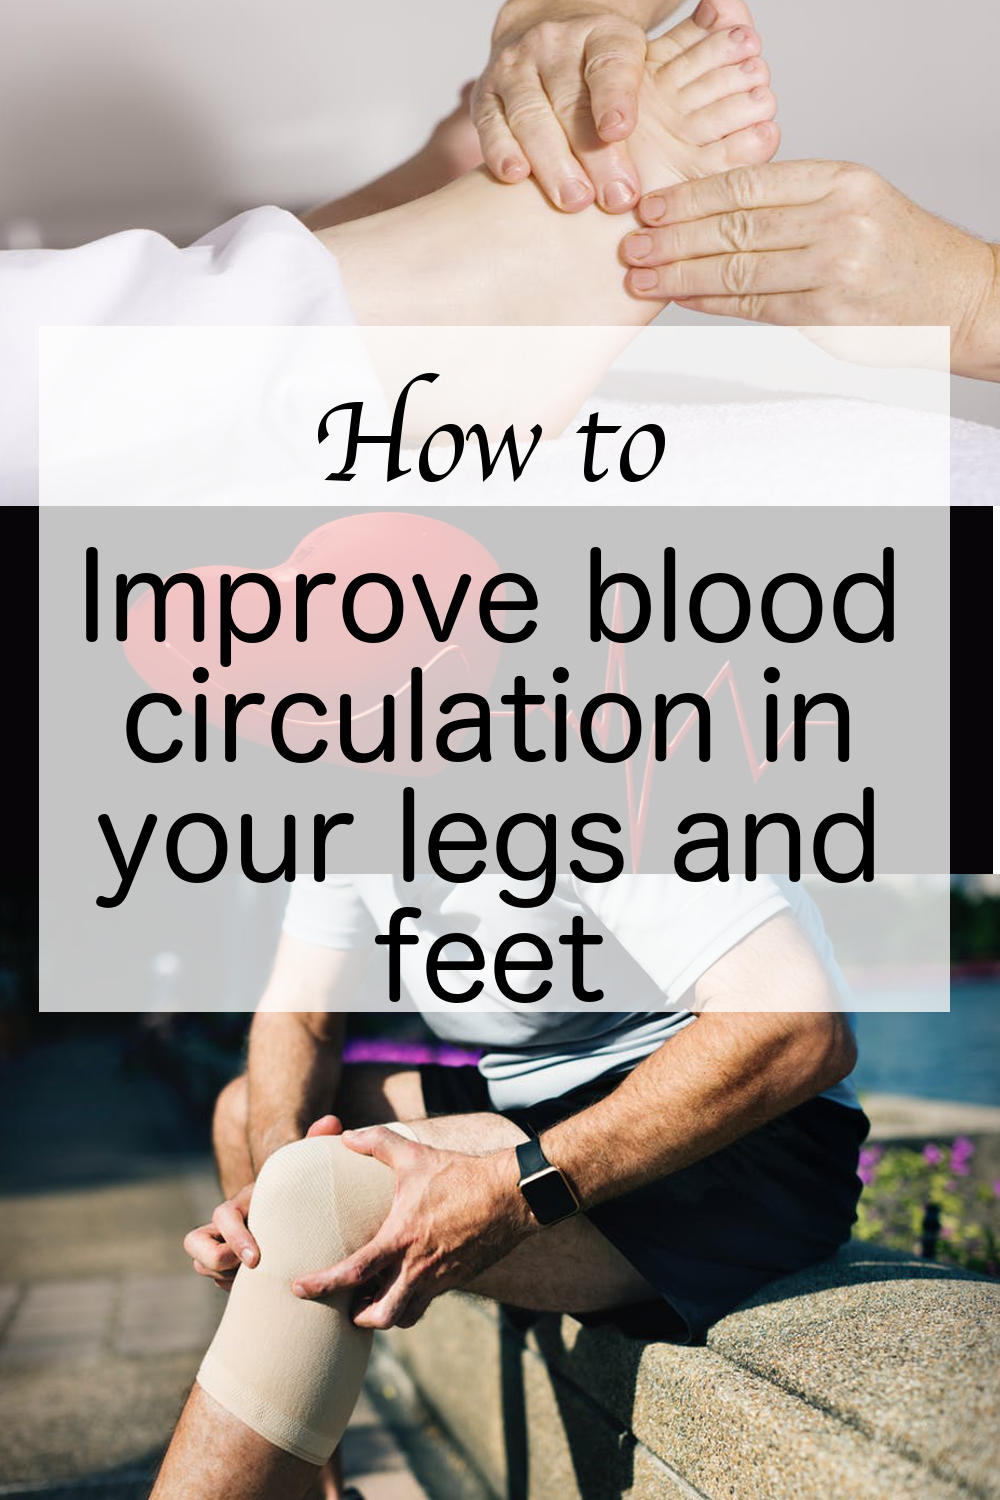 10ded6c27d065b30700db6bfc7019467 - How To Get The Blood Flowing In Your Feet